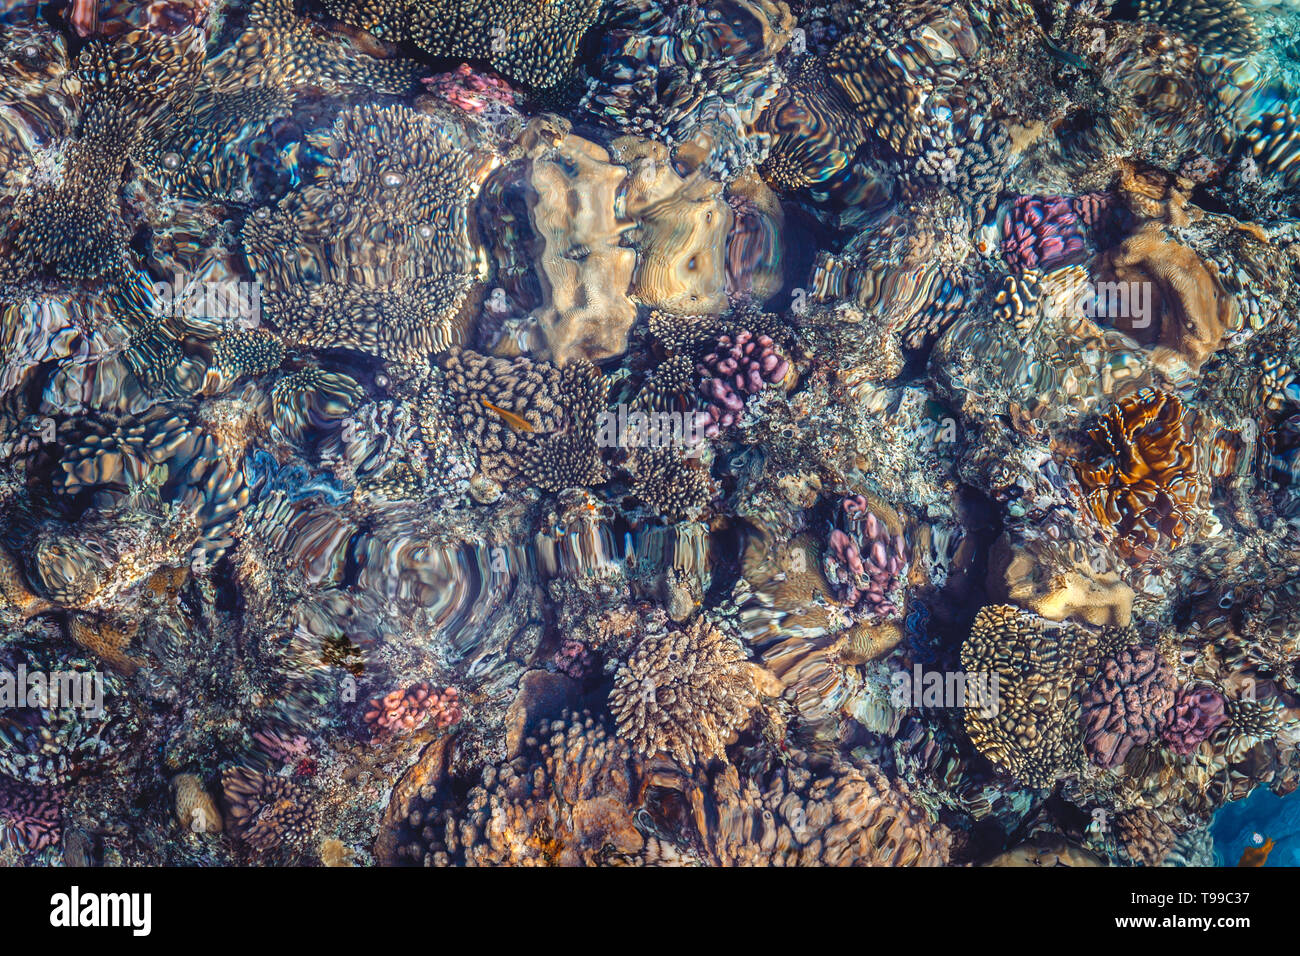 Bright coral reef with colorful fish of the Red Sea in Egypt. View from above - Stock Image